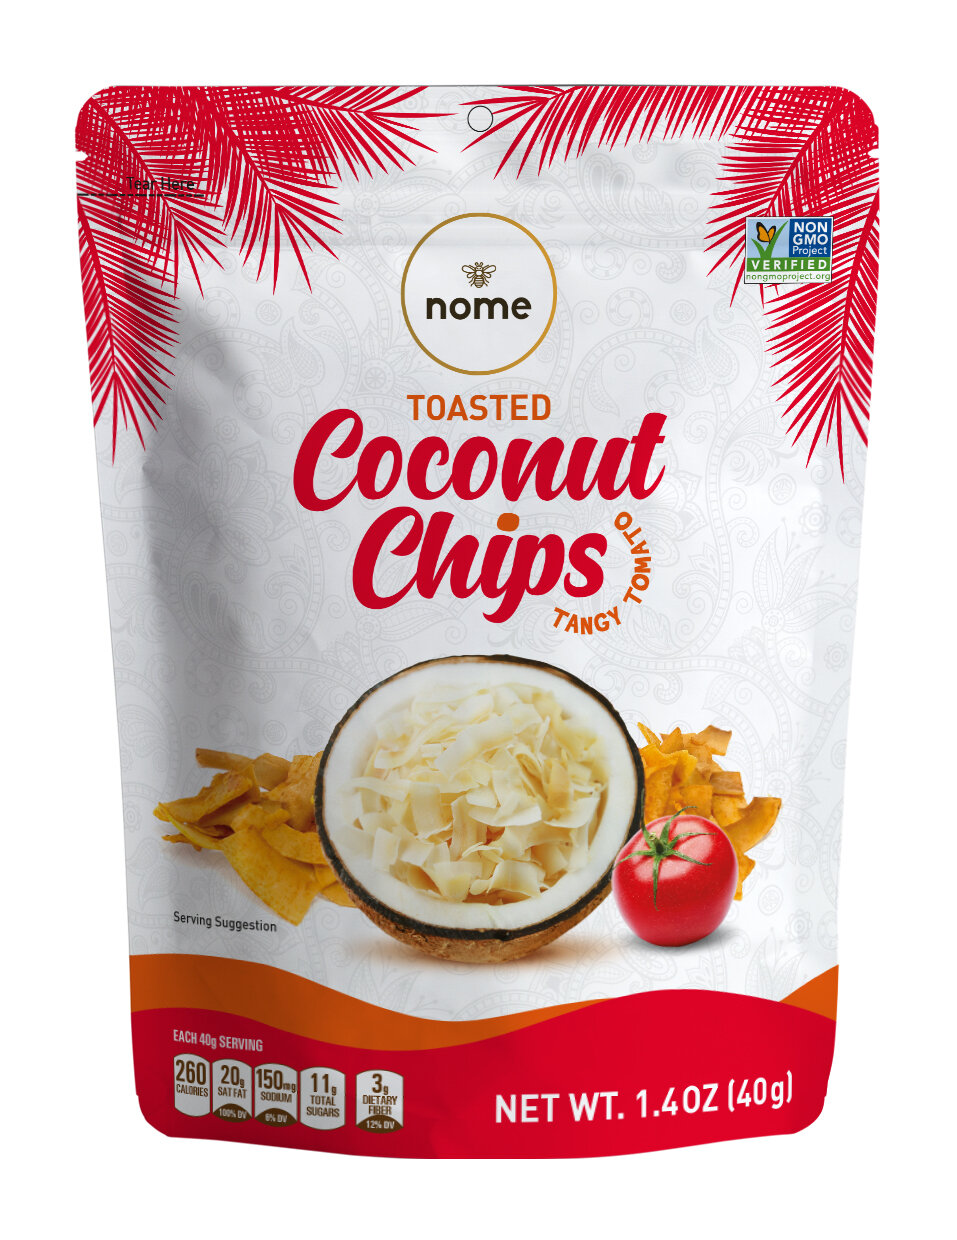 Nome Coconut Chips 1.4oz Tangy Tomato.jpg